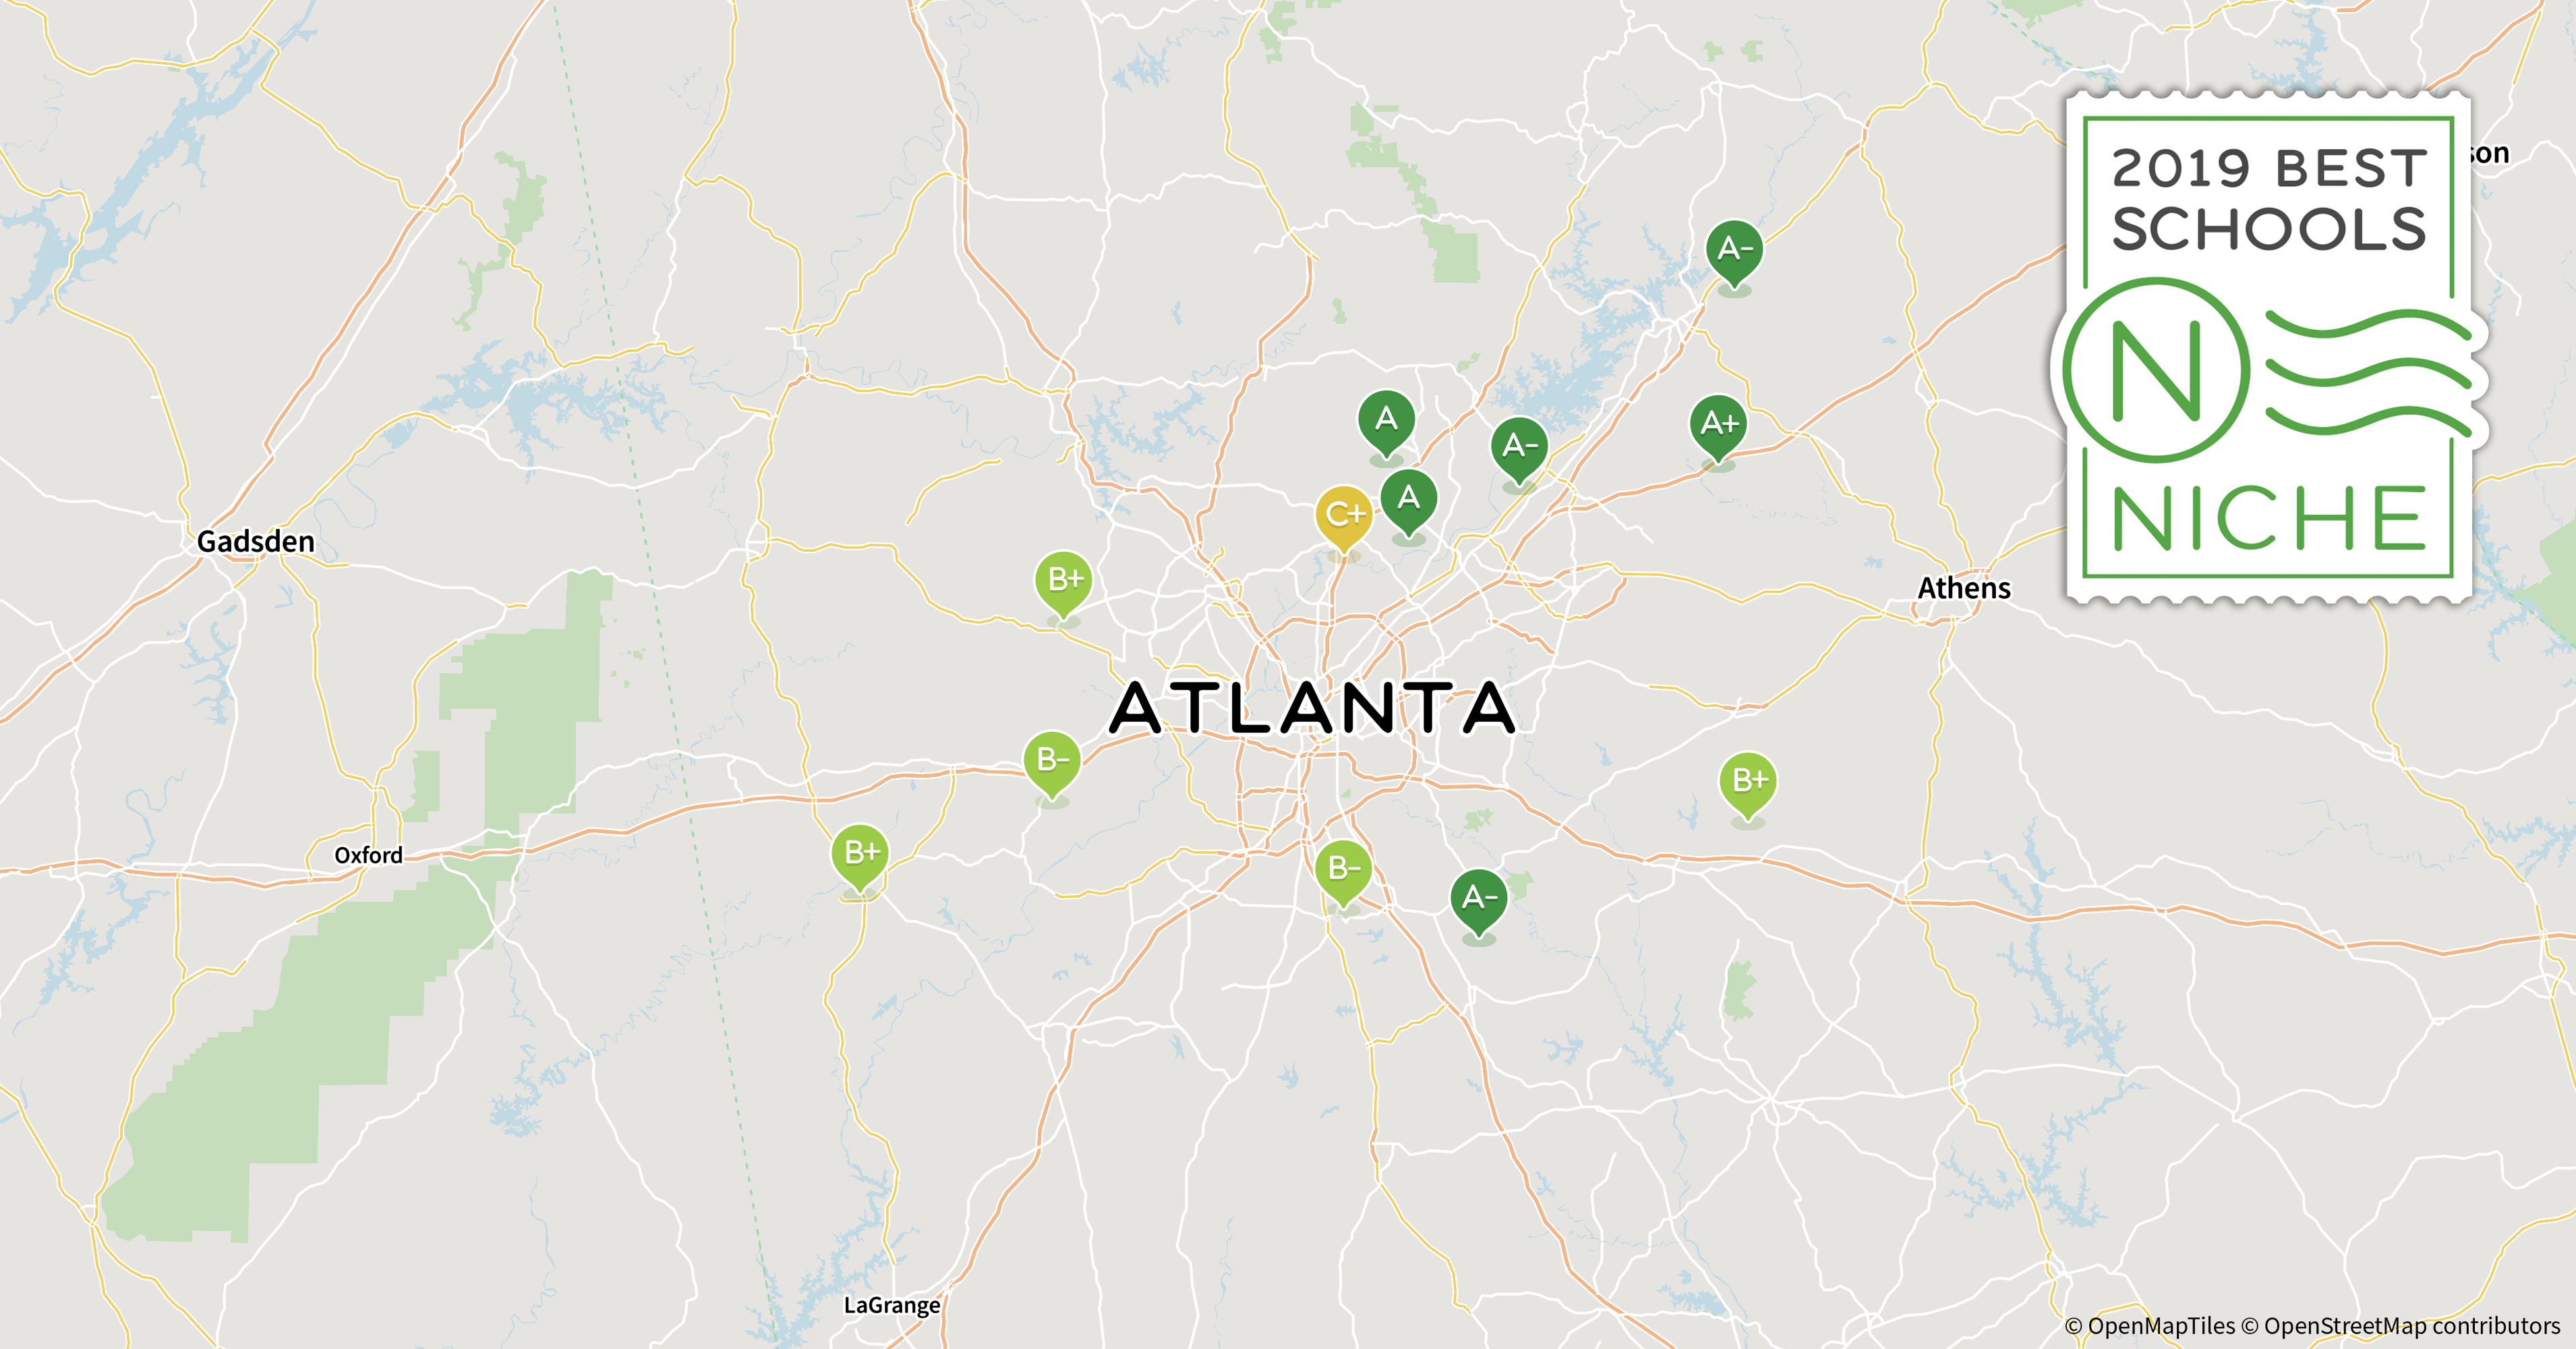 Atlanta Indiana Map.2019 Best School Districts In The Atlanta Area Niche